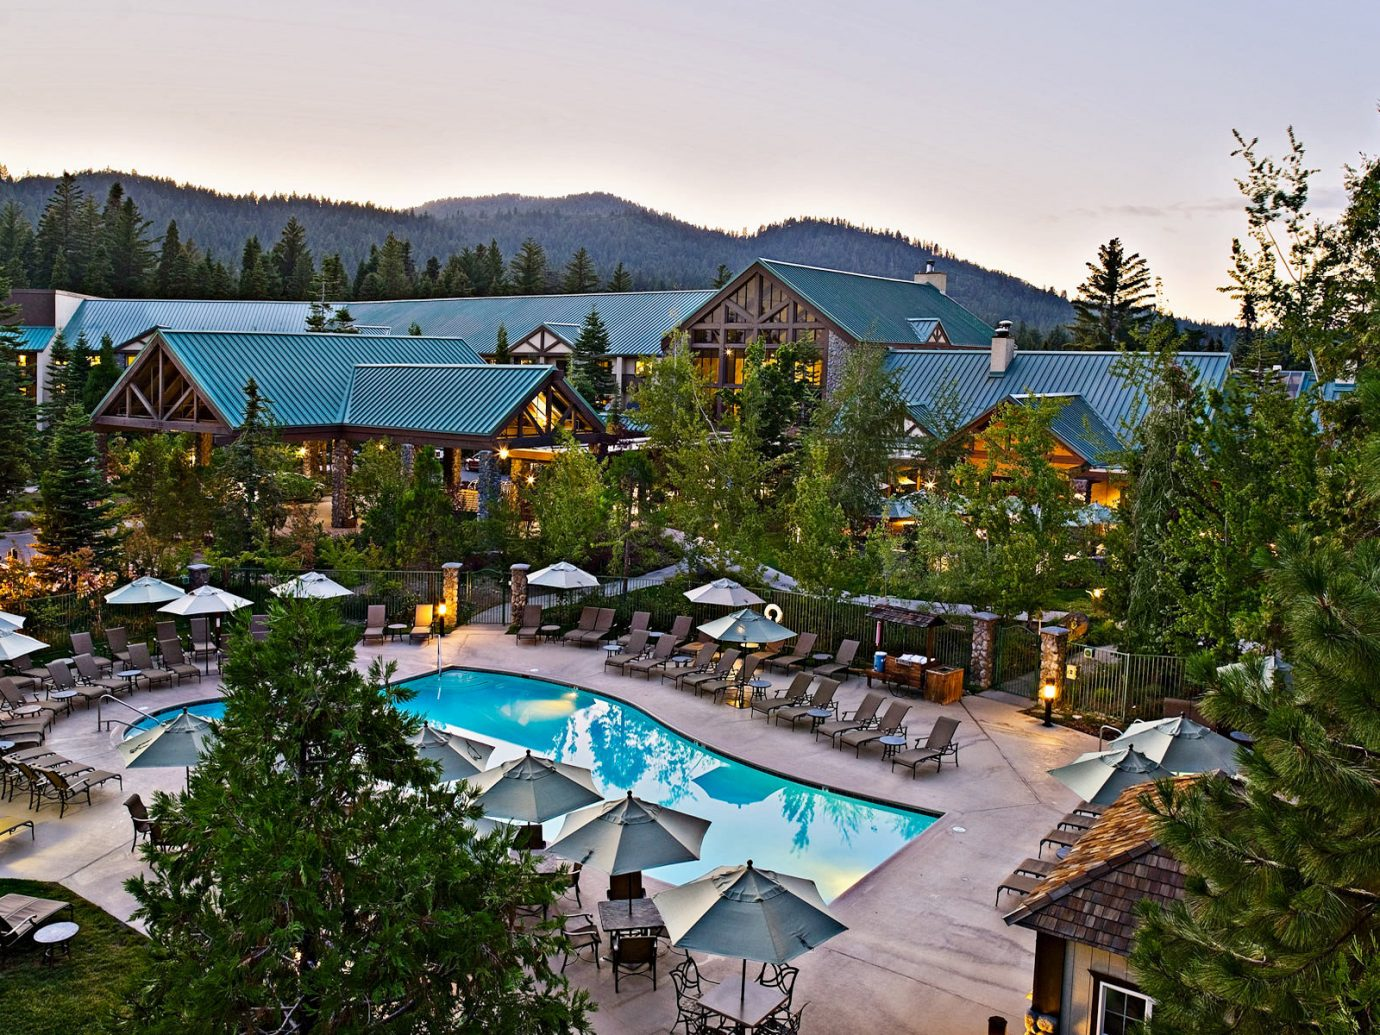 Country Family Travel Grounds Lodge National Parks Patio Pool Rustic Trip Ideas tree sky outdoor leisure Resort Town vacation estate house neighbourhood residential area Village home amusement park park several